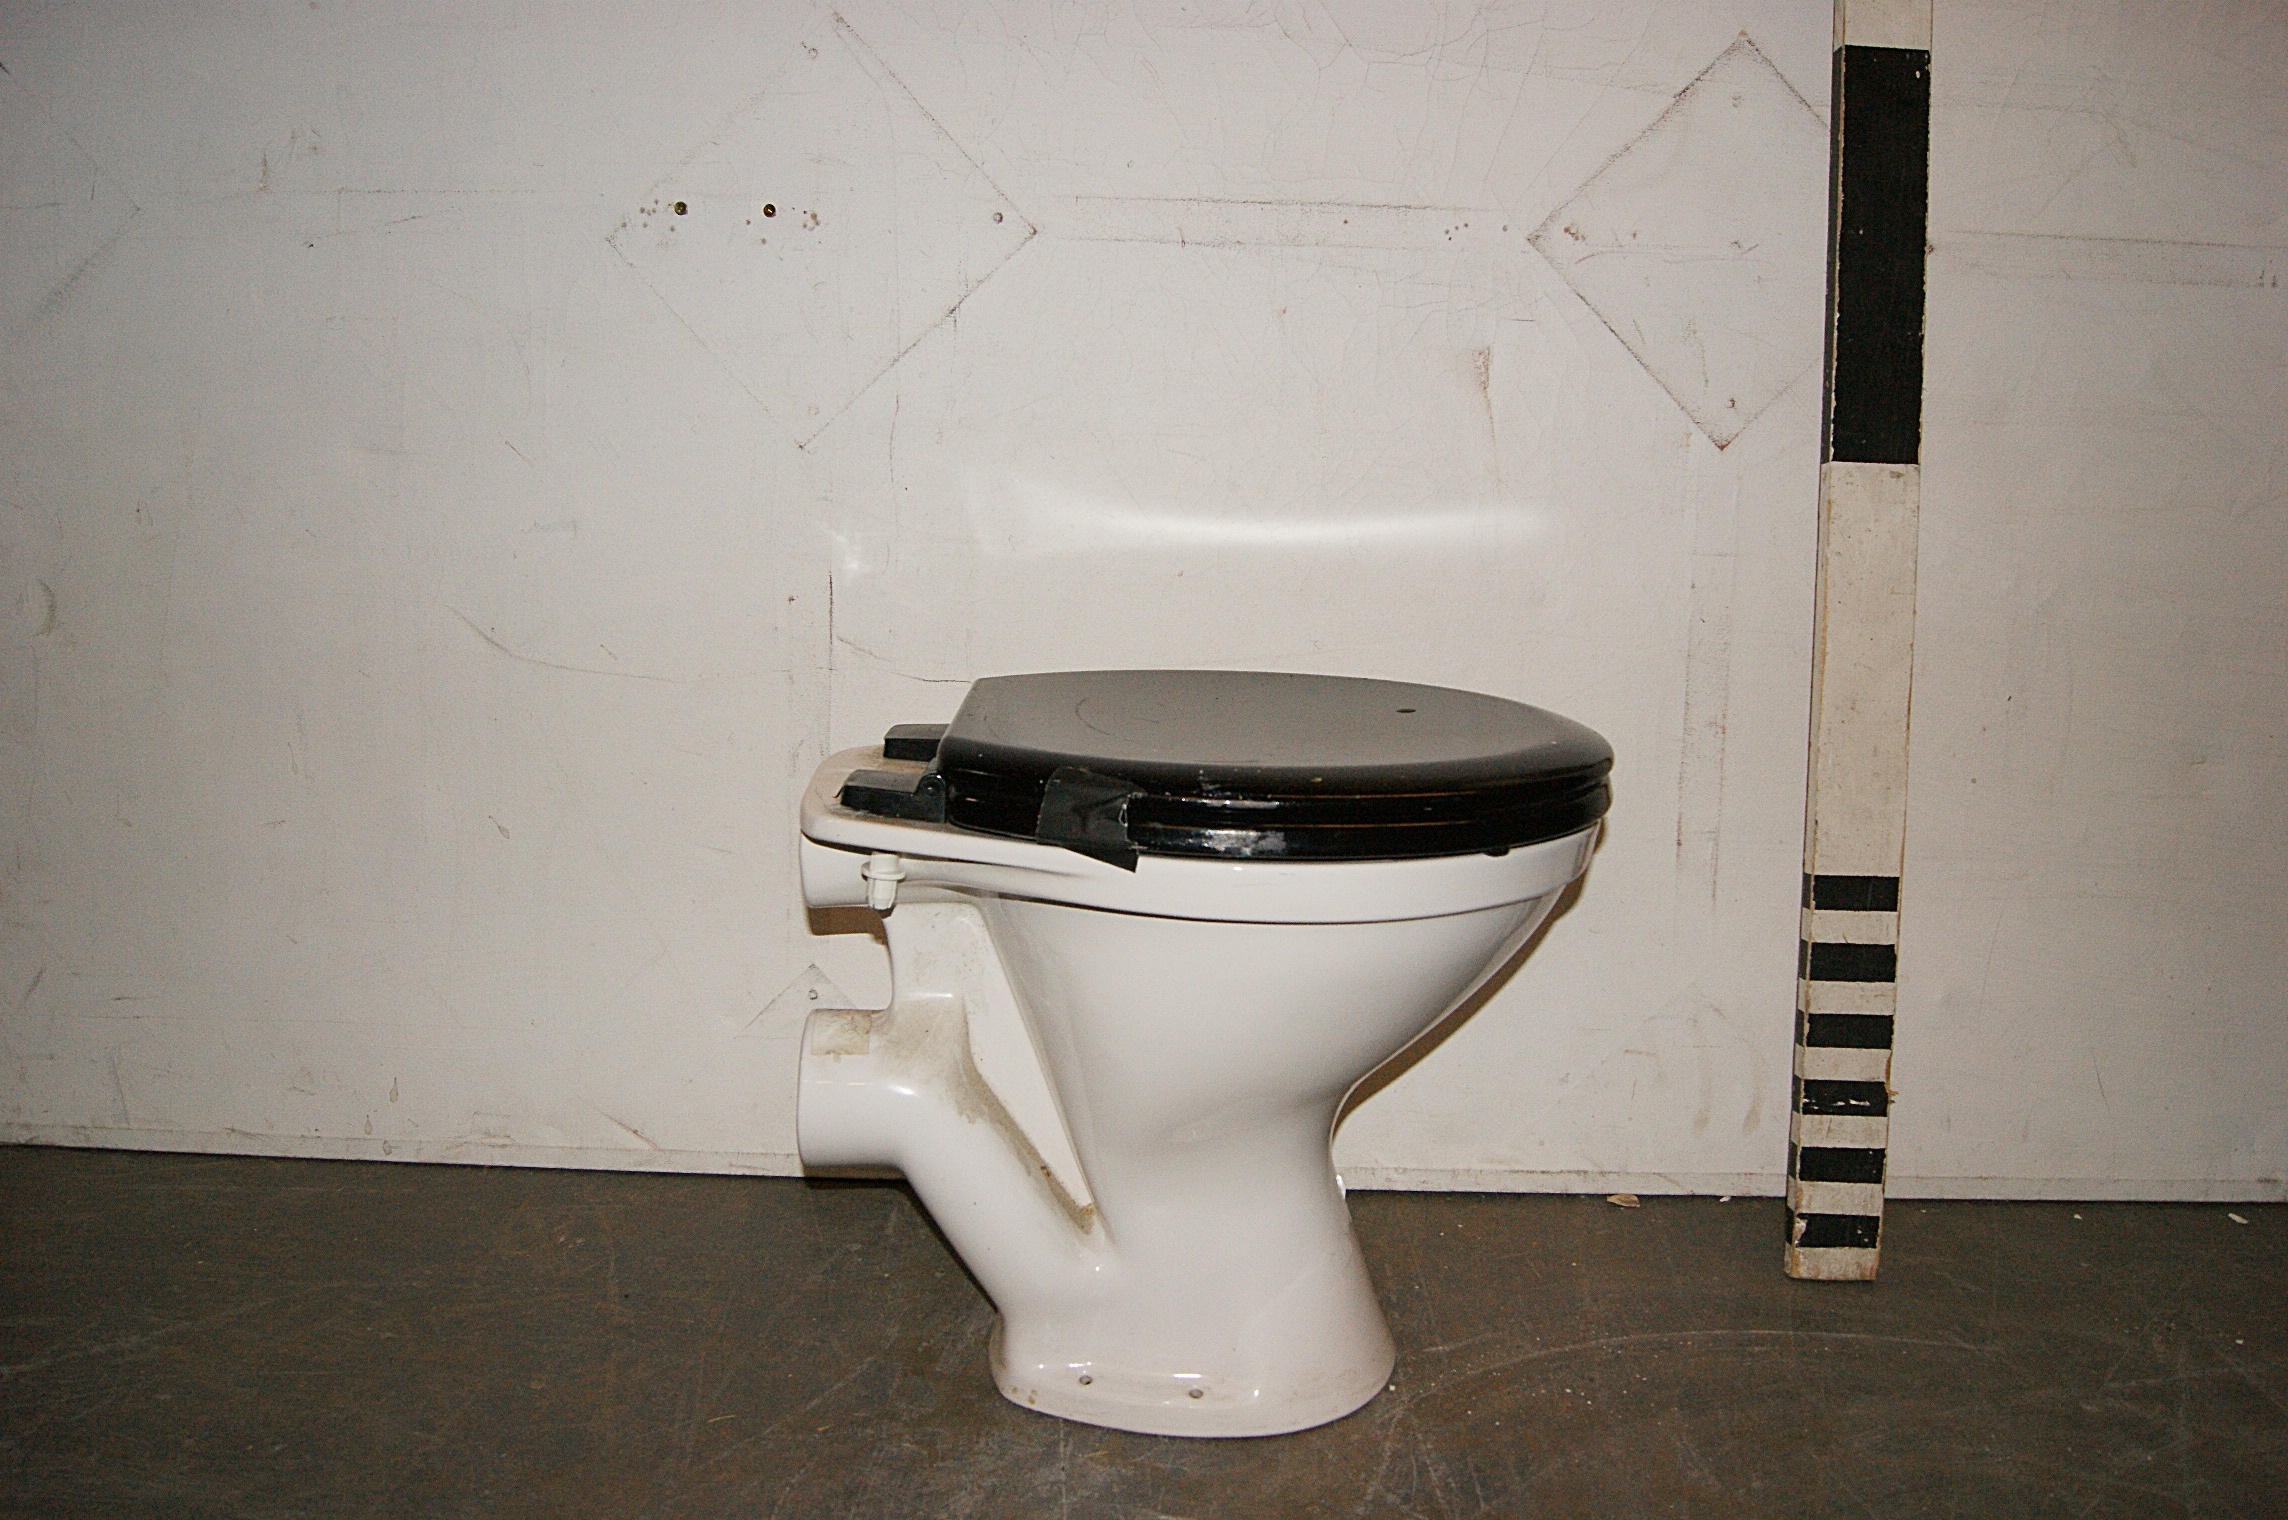 White Toilet With Black Seat. 0055042 White Toilet With Black Seat  H 45cm x 37 50 Toilets Archives Stockyard Prop and Backdrop Hire